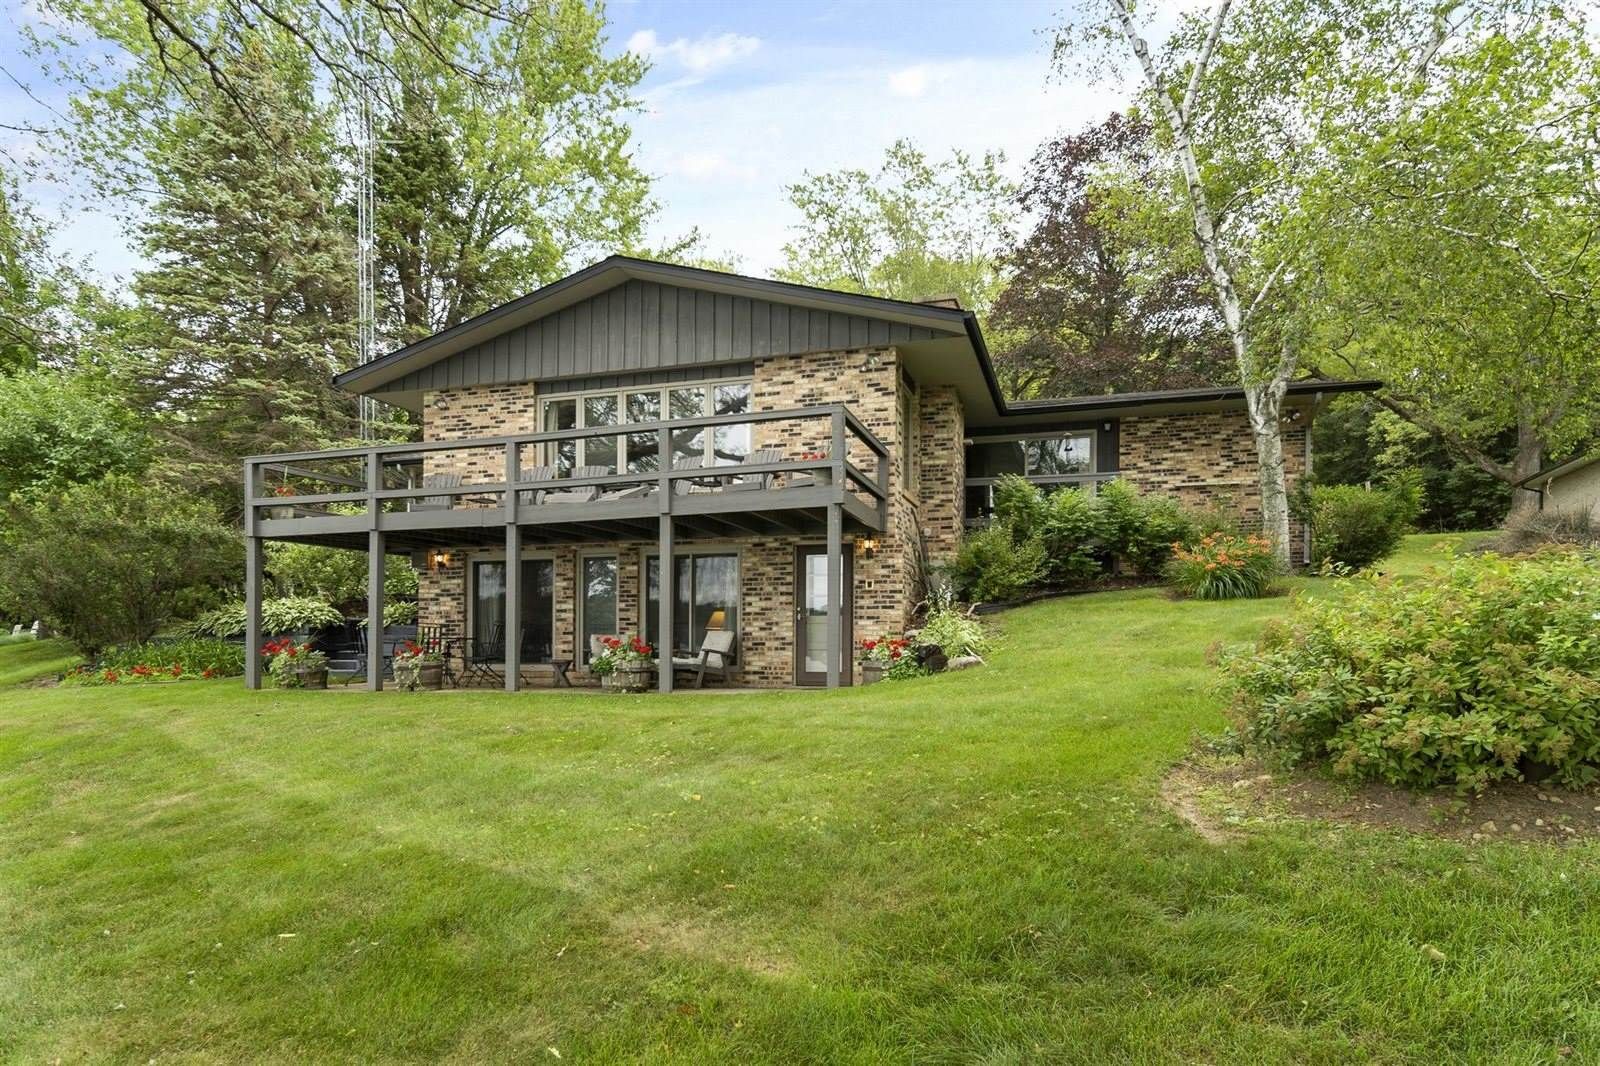 N7697 East Lakeshore Dr, Whitewater, WI 53190